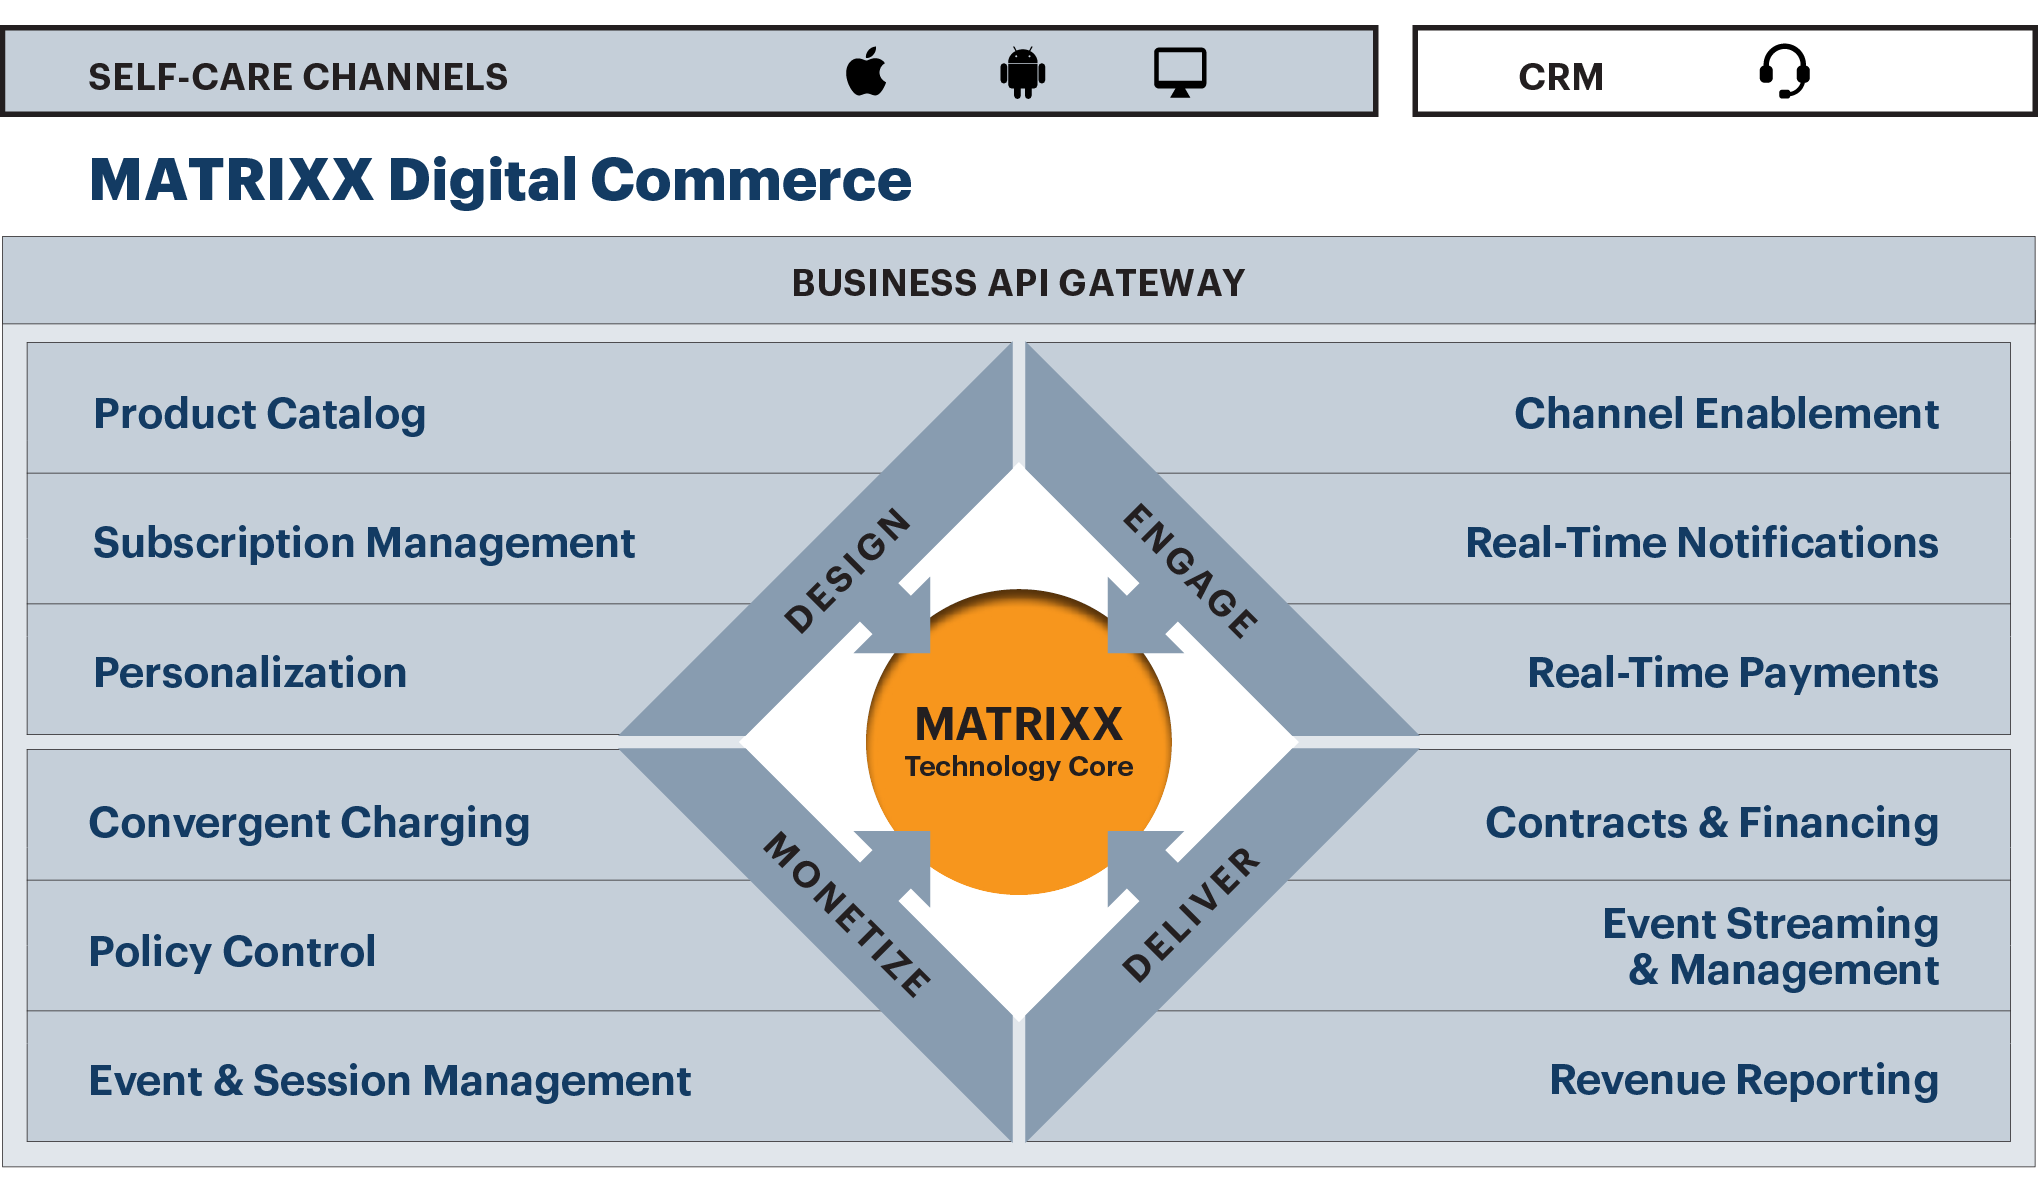 MATRIXX Digital Commerce Platform